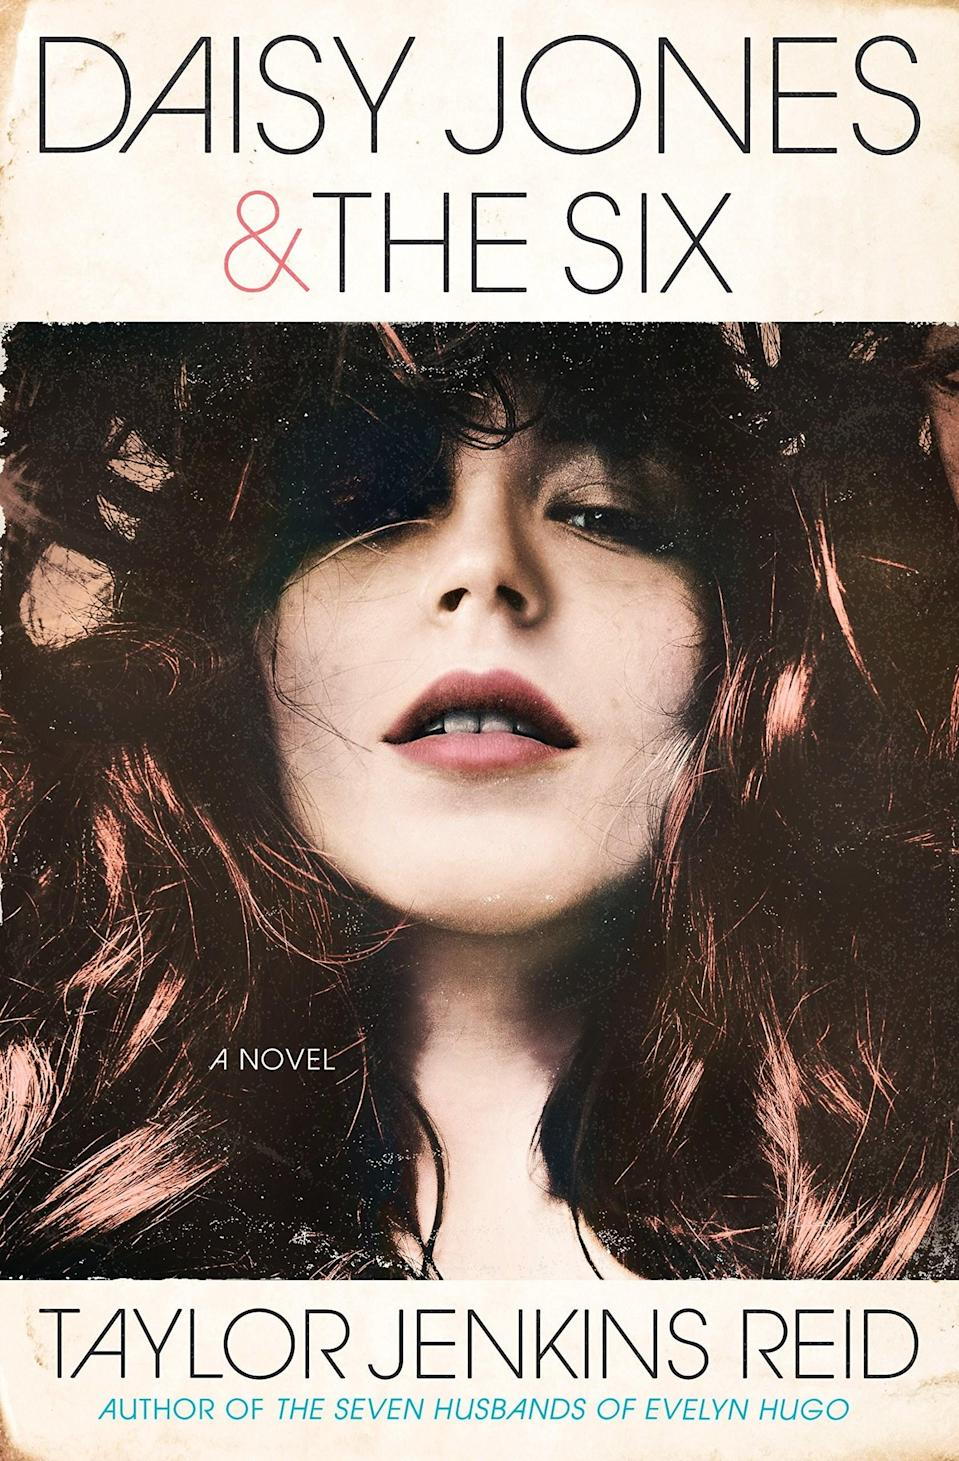 """Queue up Stevie Nicks, Janis Joplin, and Joni Mitchell, then dive headfirst into the world of <em>Daisy Jones & the Six.</em> The novel is structured like an oral history and tells the story of an iconic '70s band that had a meteoric rise to fame—and burned out just as quickly. <a href=""""https://variety.com/2018/tv/news/amazon-daisy-jones-the-six-series-reese-witherspoon-1202883814/"""" rel=""""nofollow noopener"""" target=""""_blank"""" data-ylk=""""slk:Reese Witherspoon"""" class=""""link rapid-noclick-resp"""">Reese Witherspoon</a> is already adapting the book into an Amazon miniseries, so get ready for this to be your next <em>Big Little Lies</em>–level obsession."""